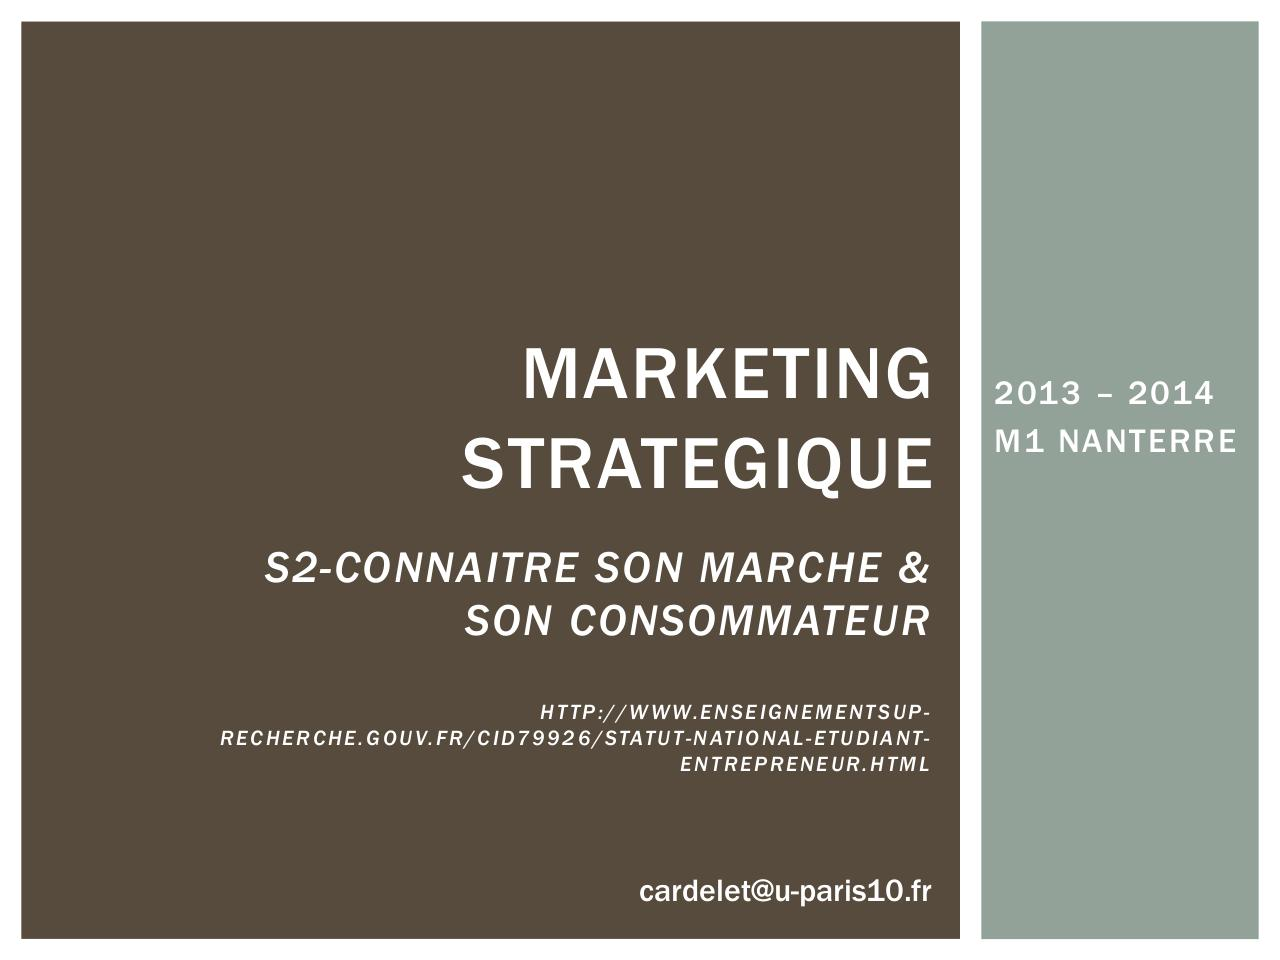 marketing strategique par caroline - resum u00e9 cours mkg strategique pdf